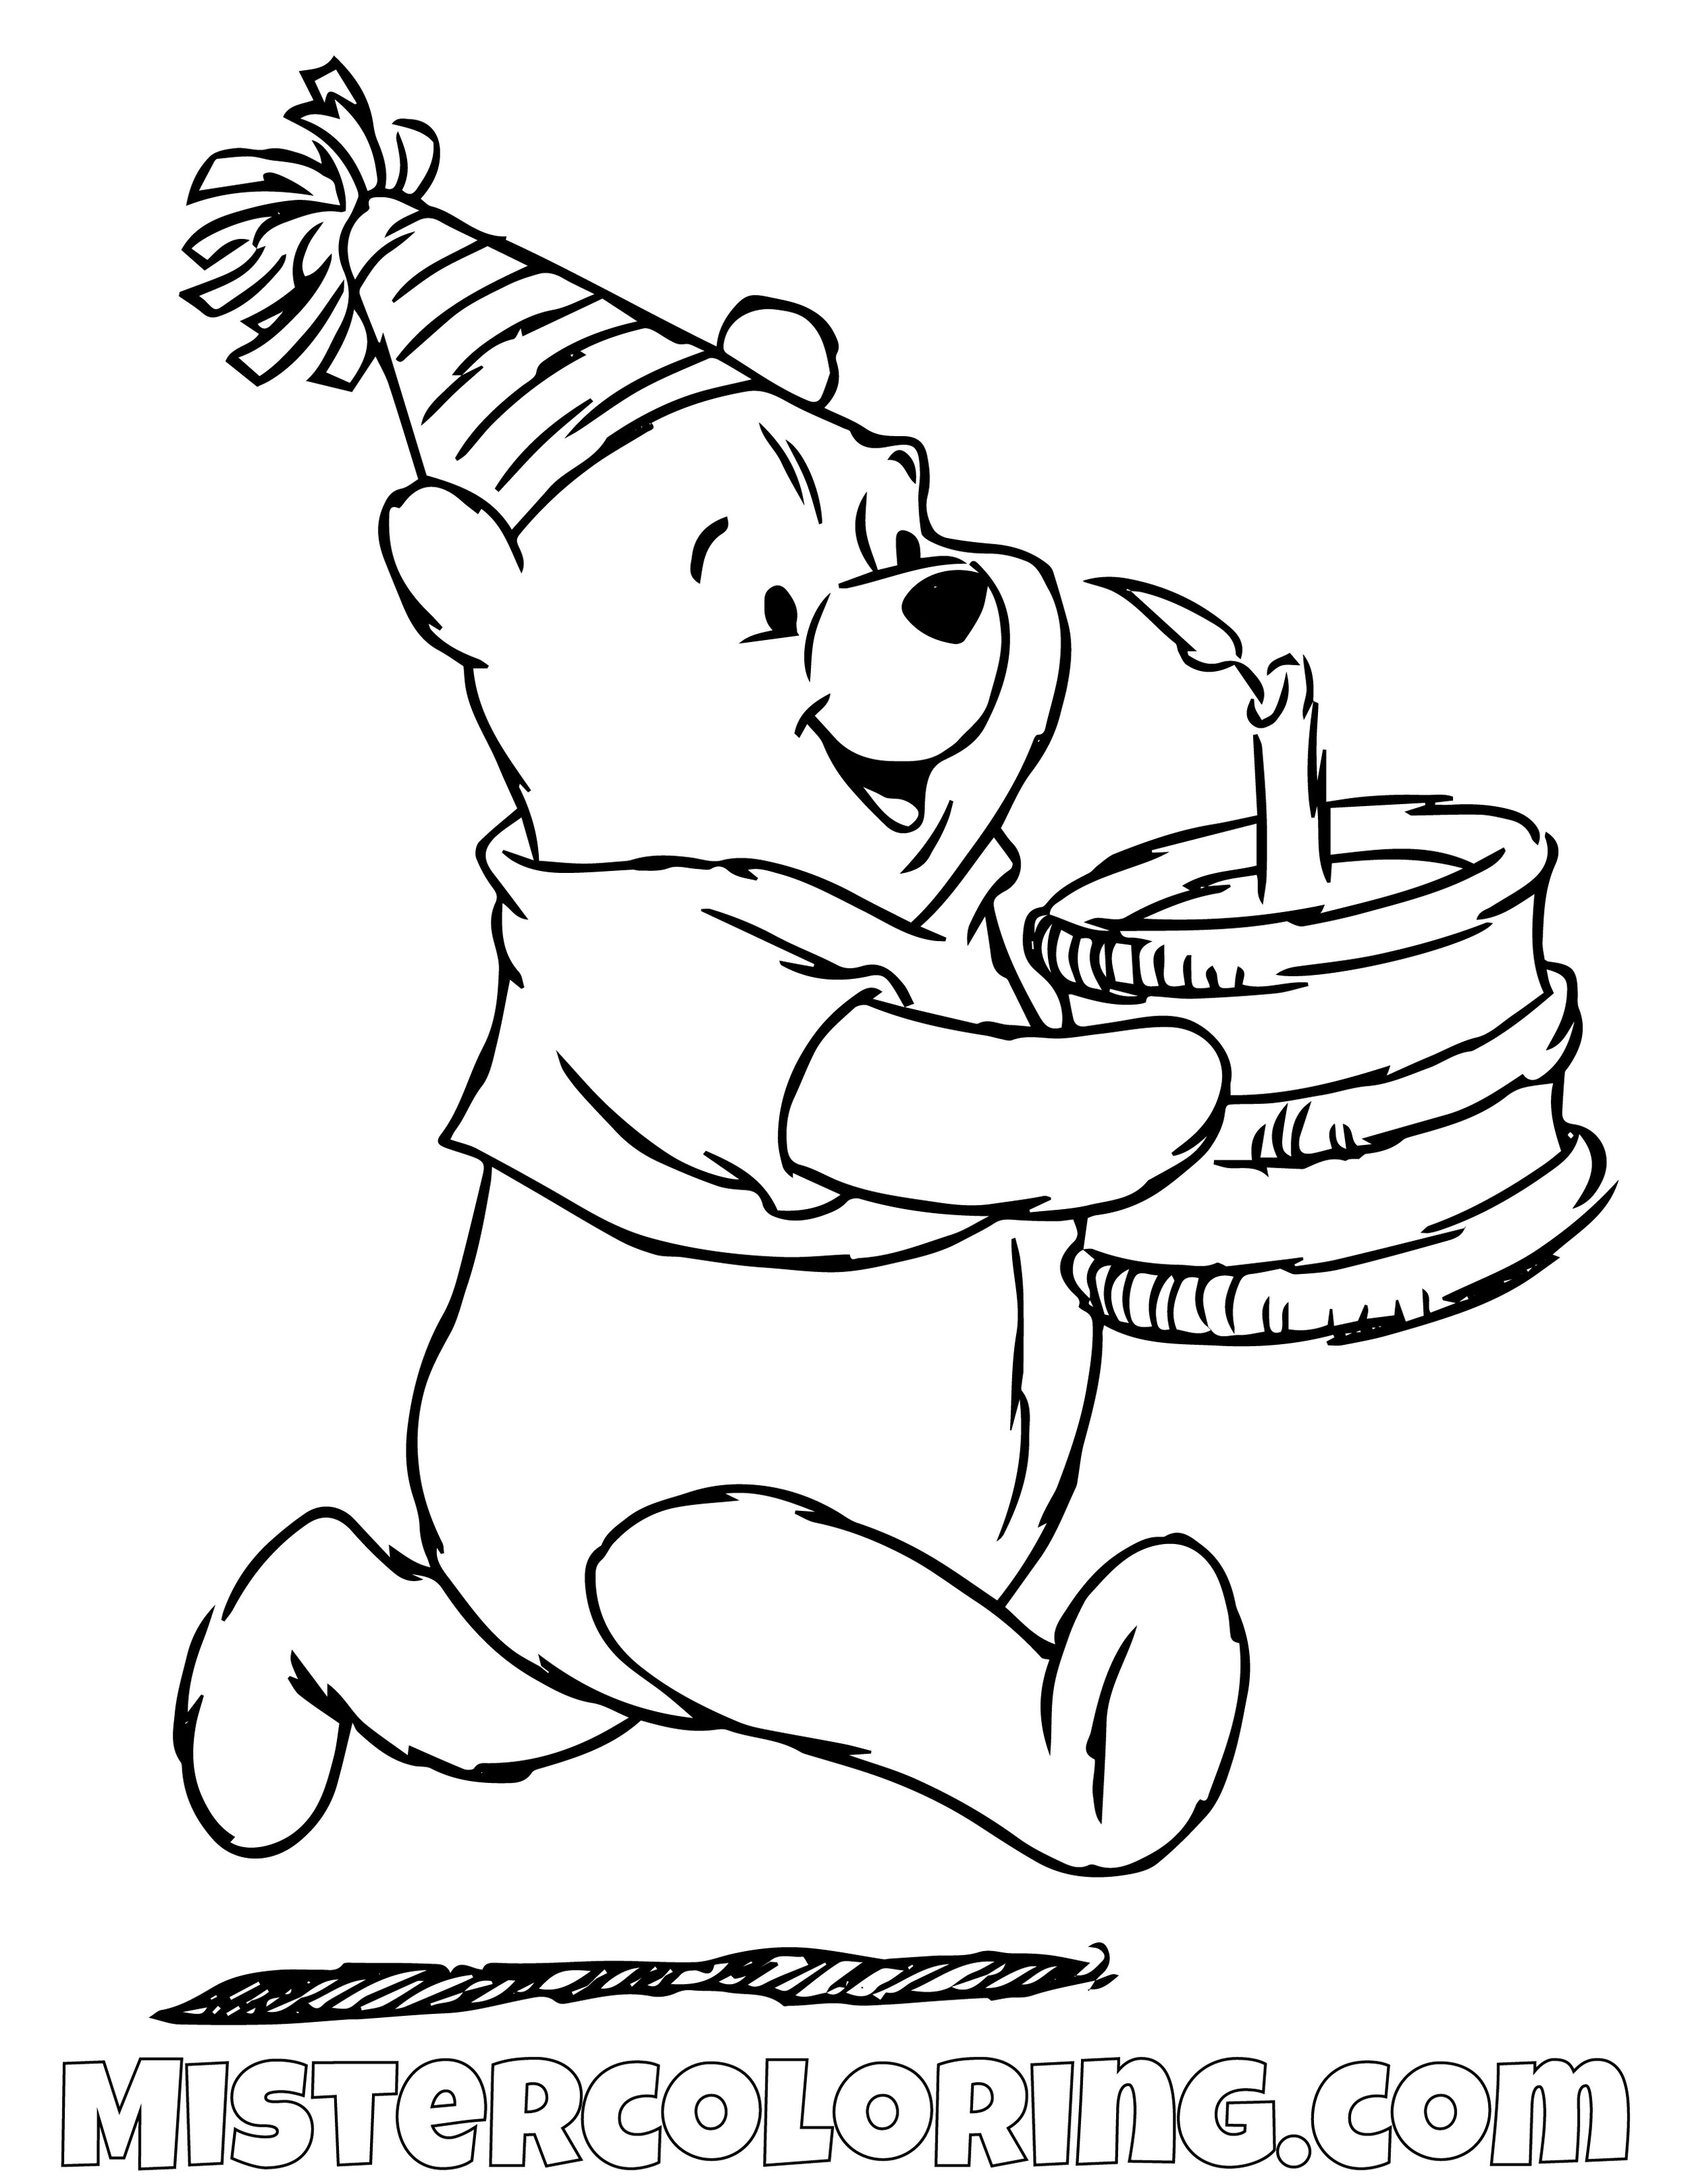 Winnie The Pooh Running With Cake Coloring Page